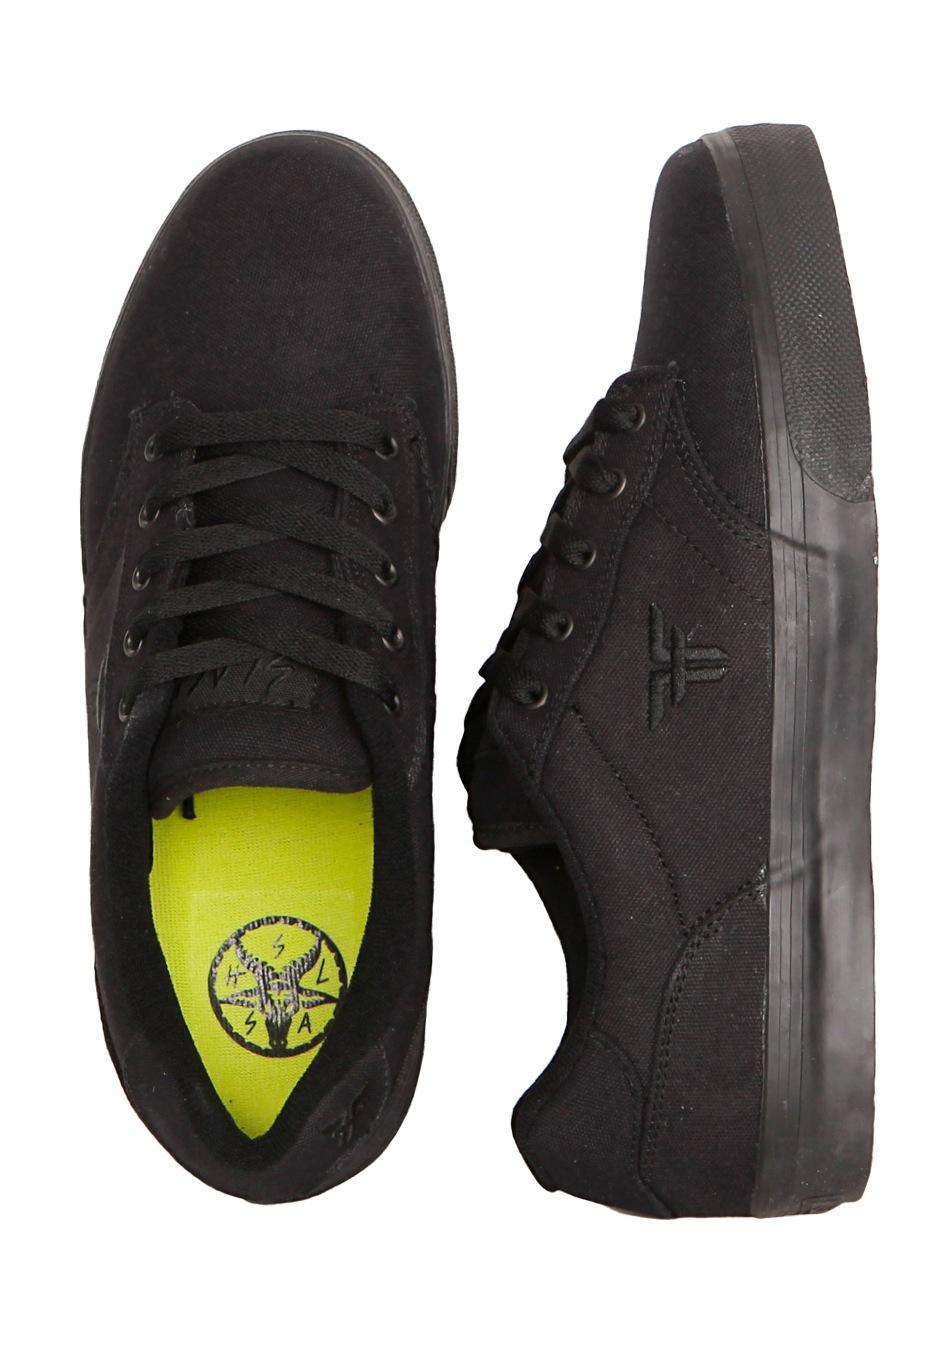 Fallen Black Ops Shoes